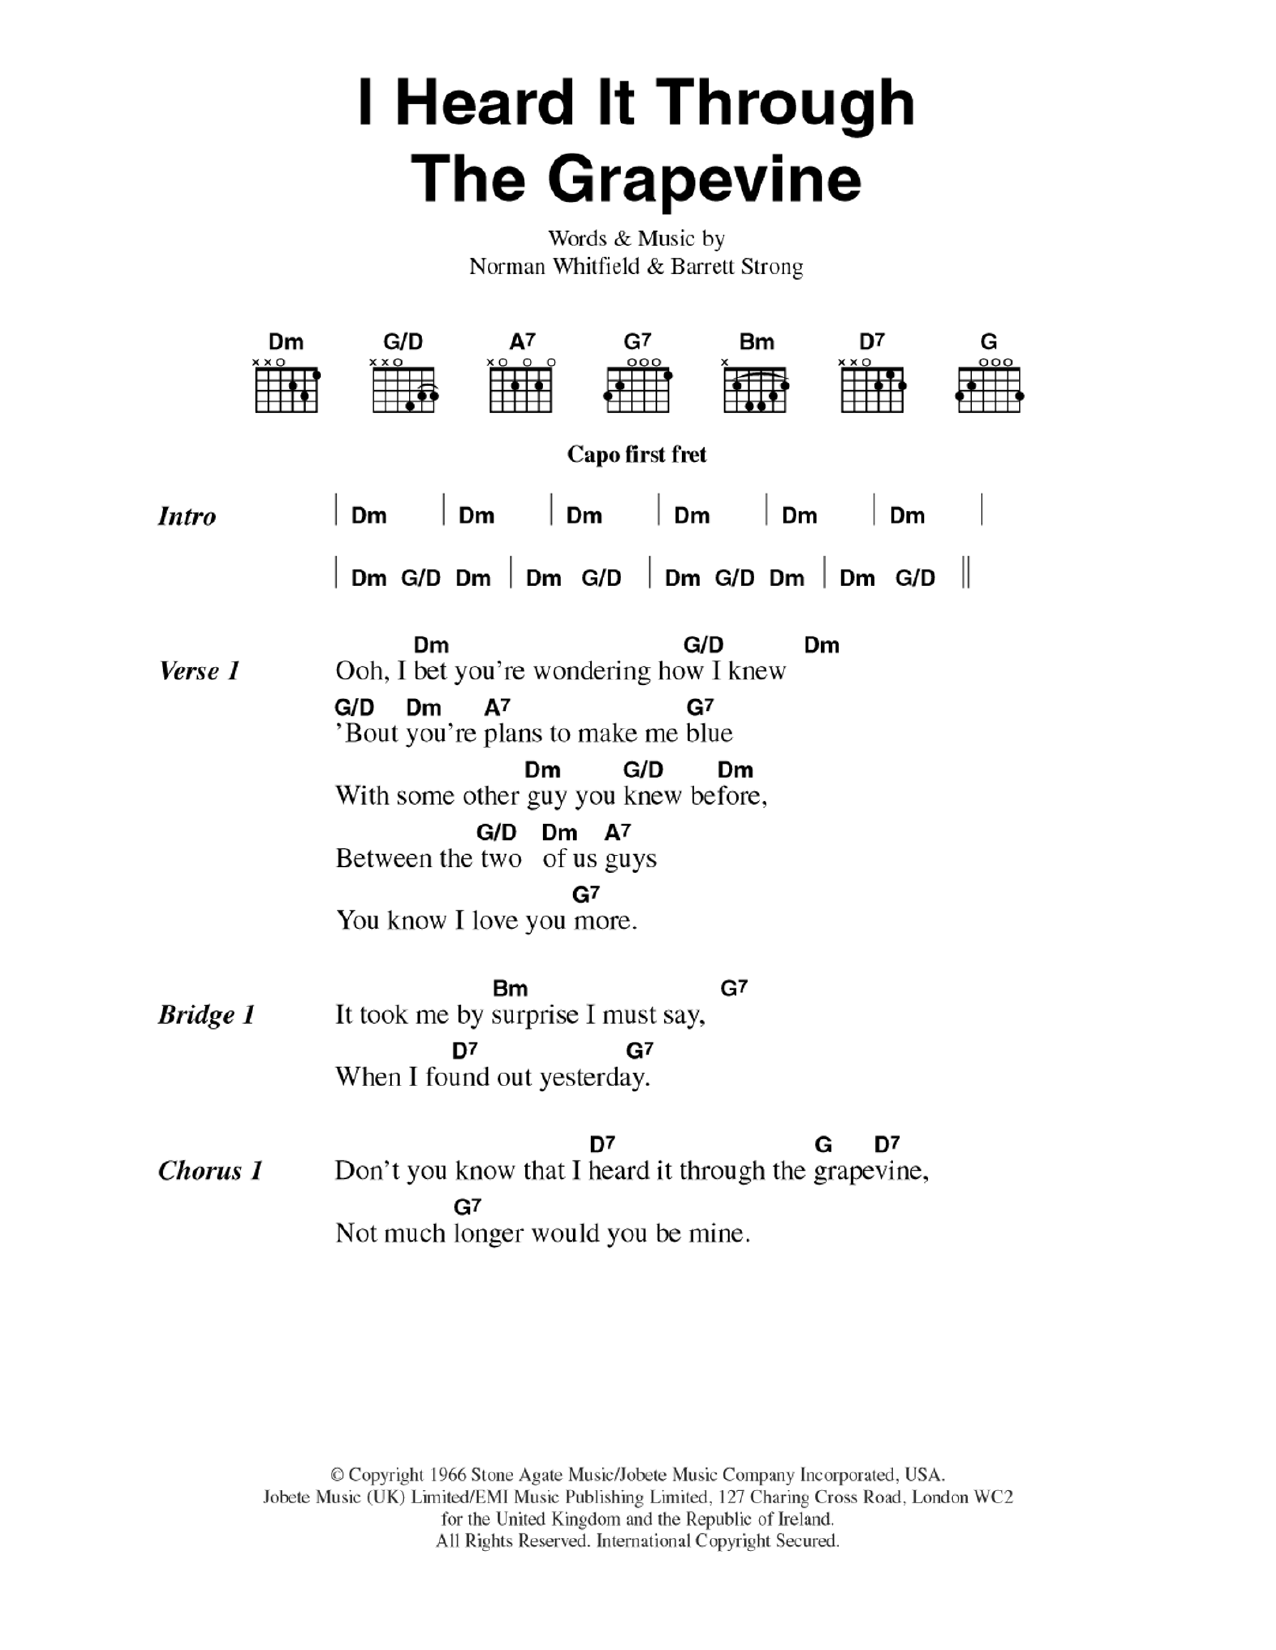 I Heard It Through The Grapevine Sheet Music Marvin Gaye Lyrics